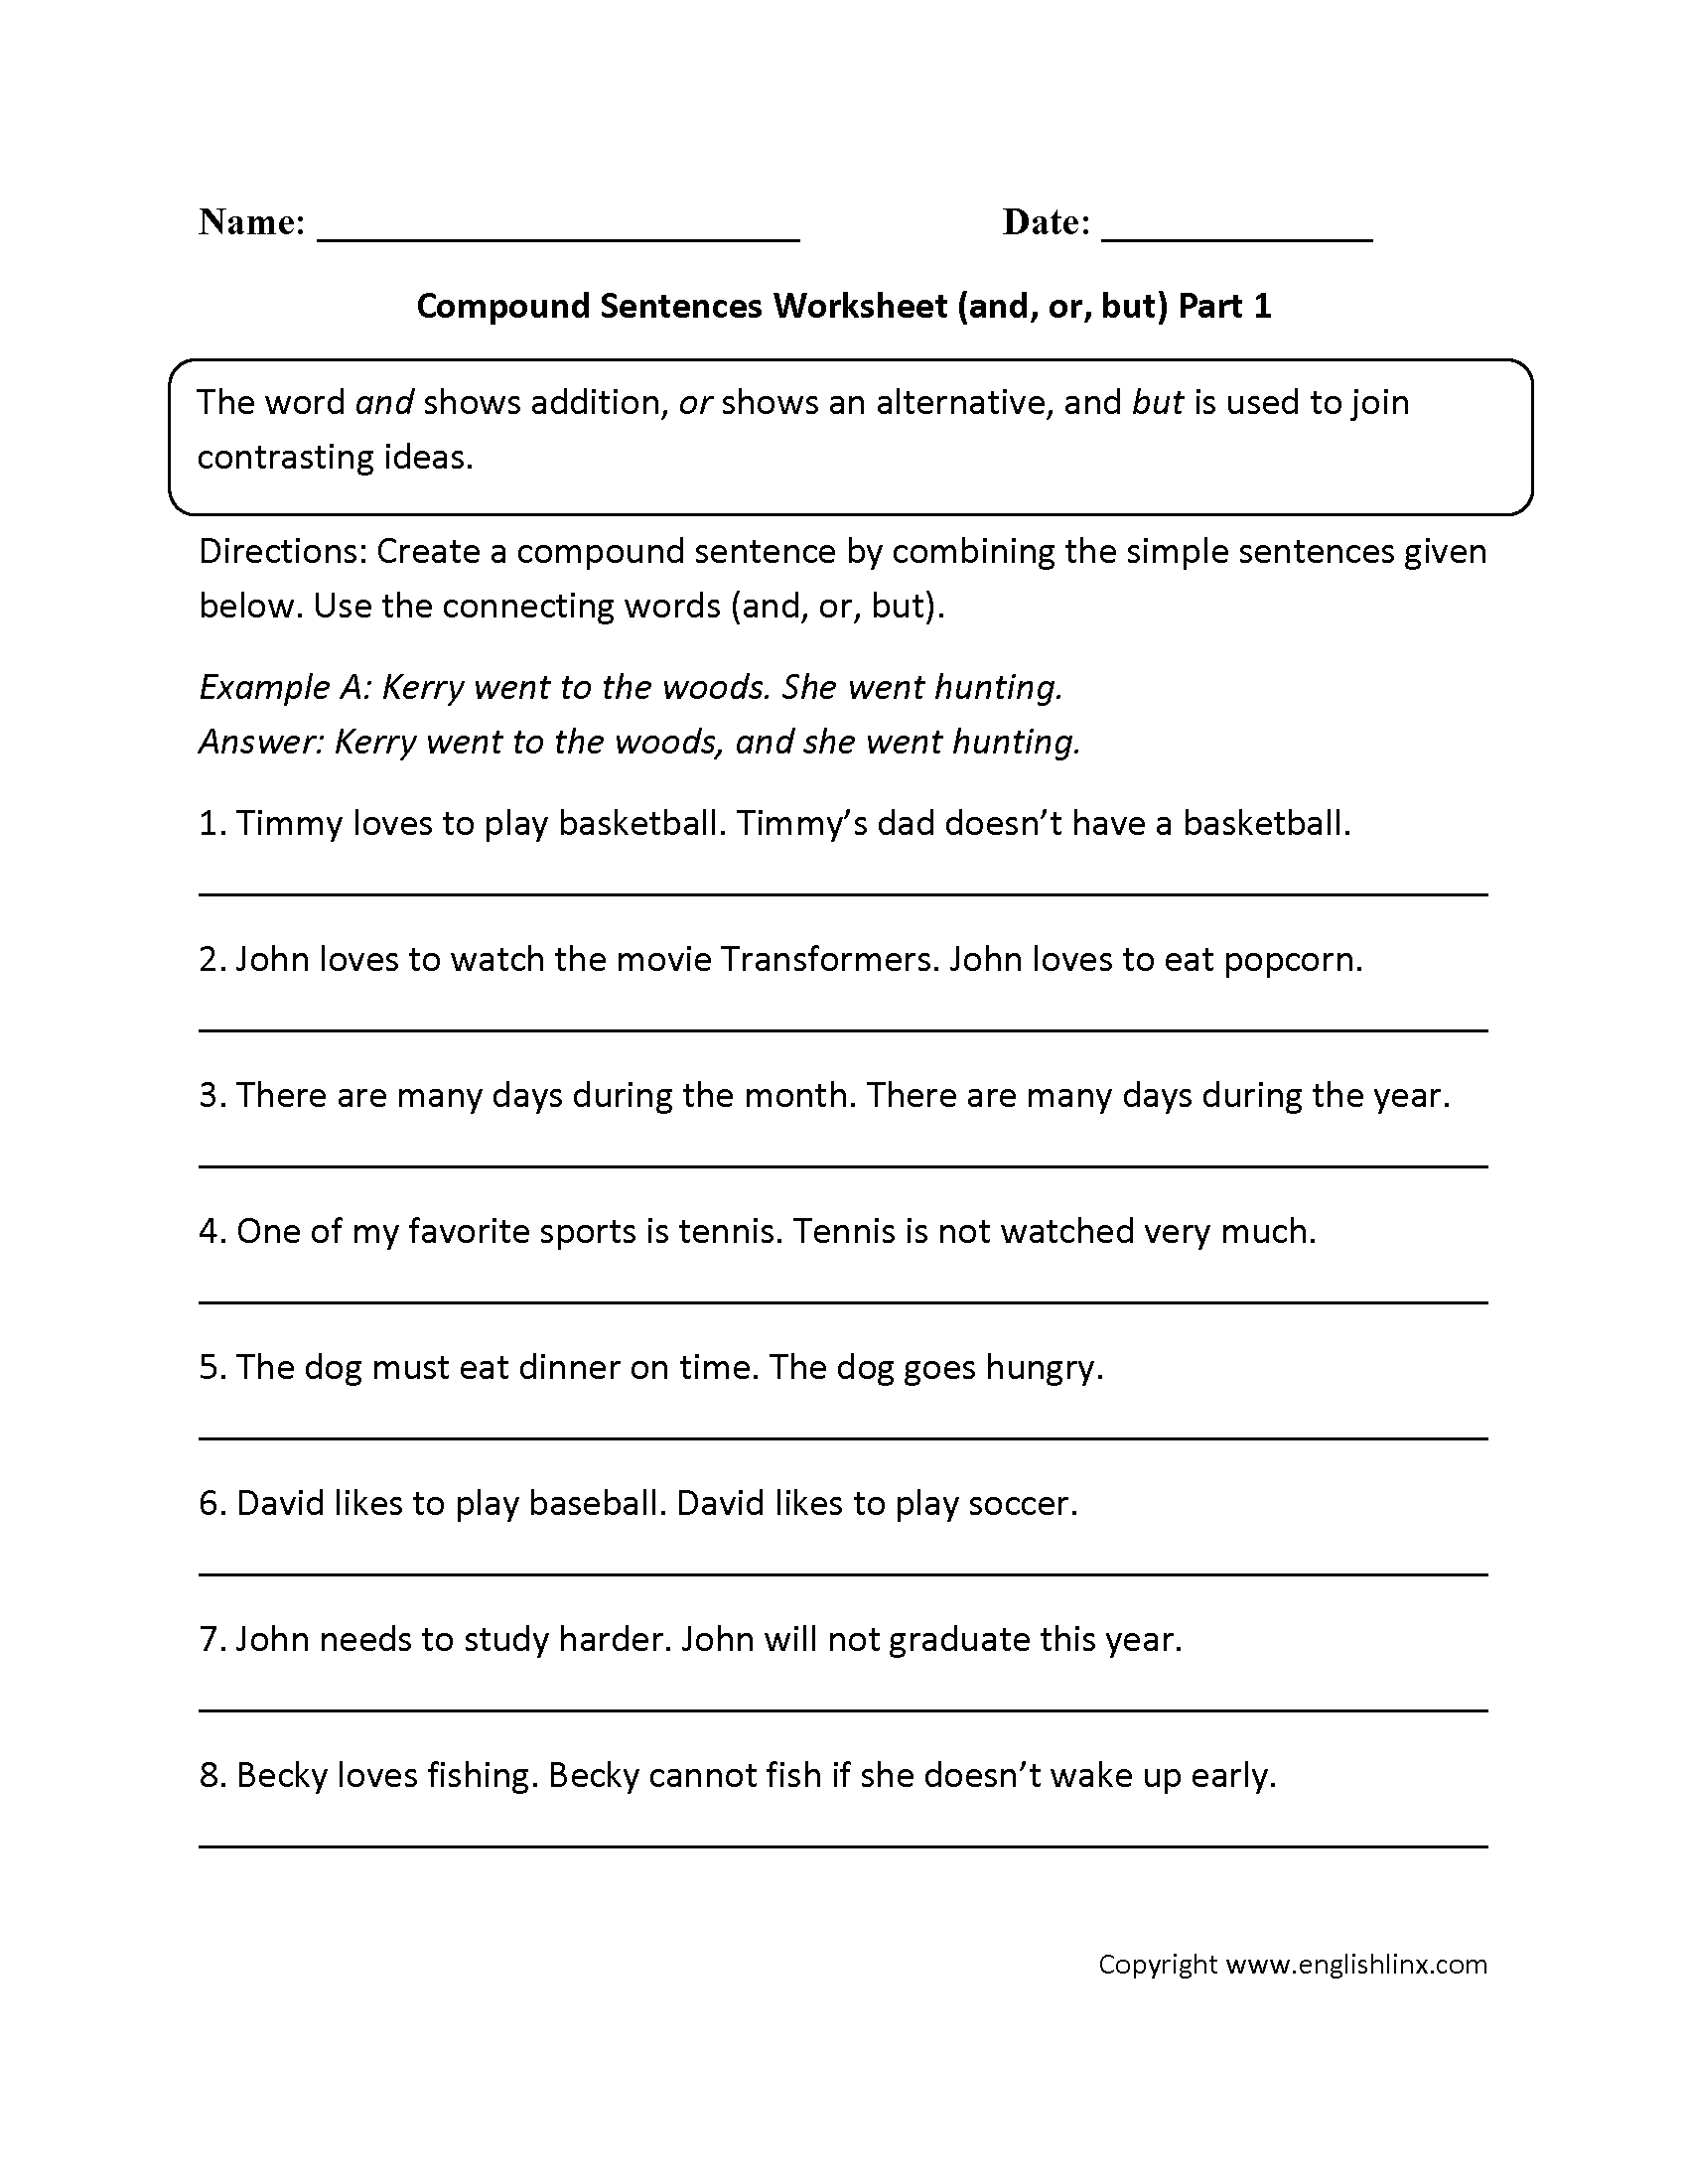 Compound Sentences Worksheets – Simple Compound and Complex Sentences Worksheet with Answers